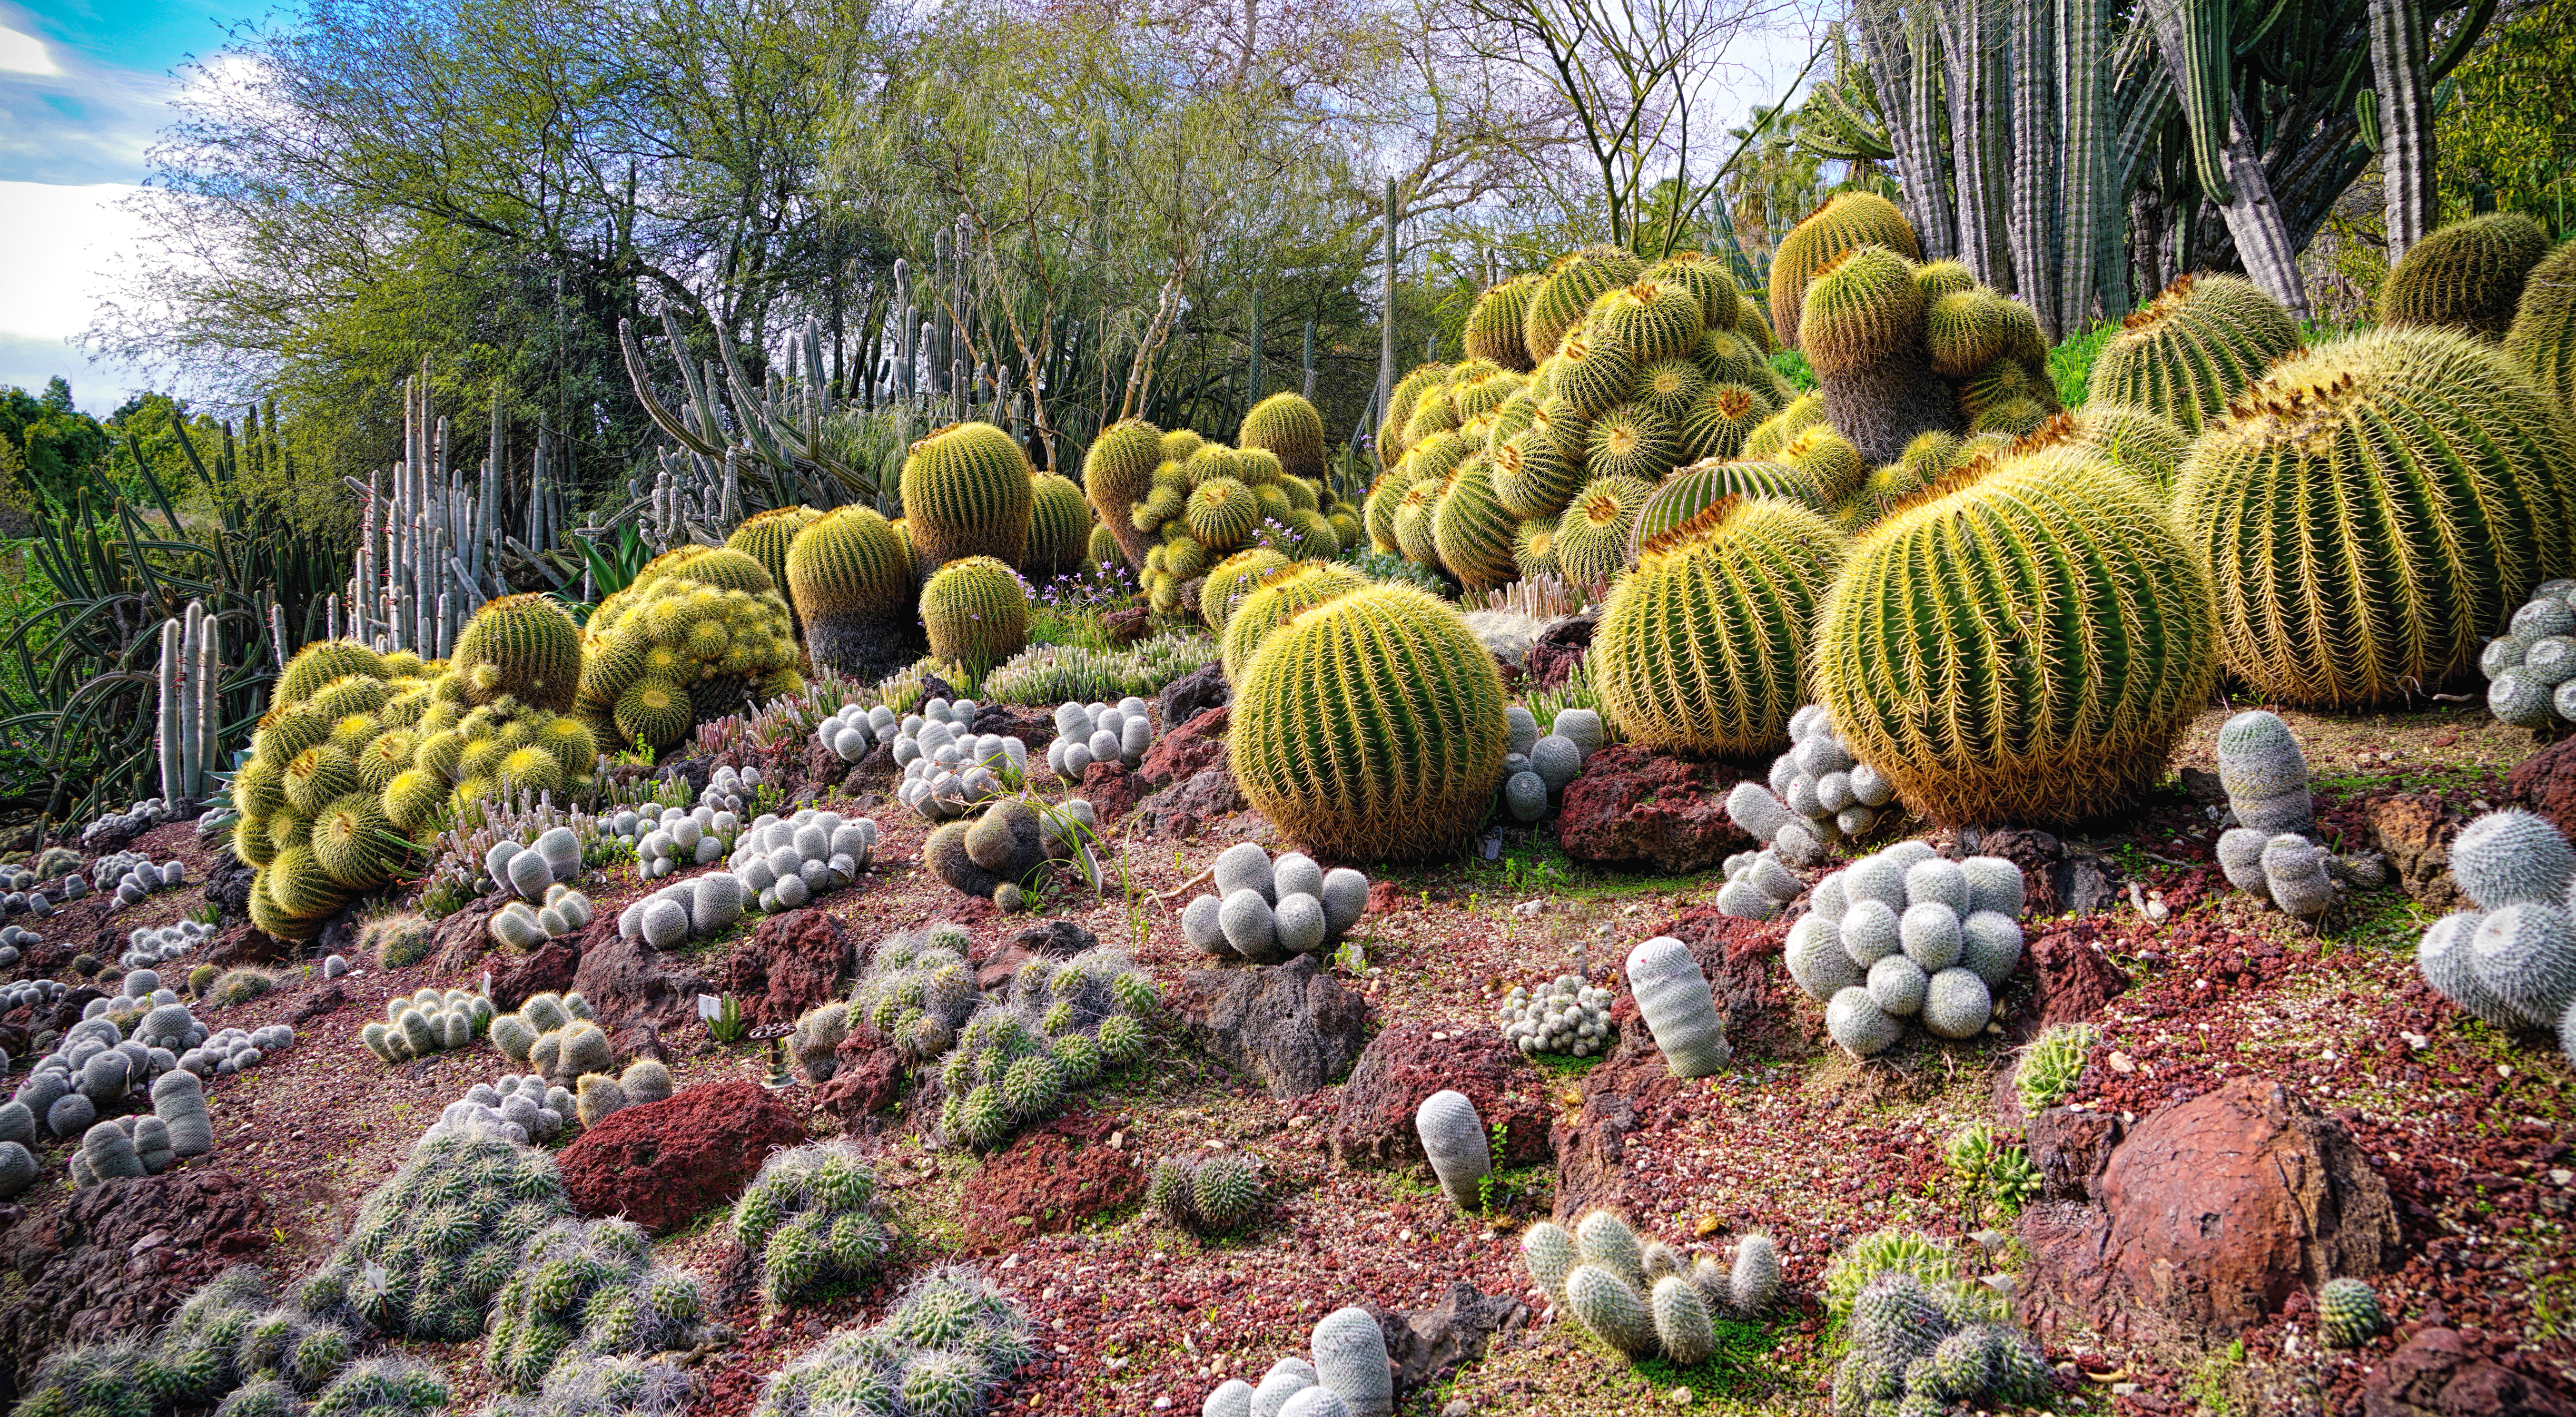 Cactii on the Hill 220 By Mike Hope